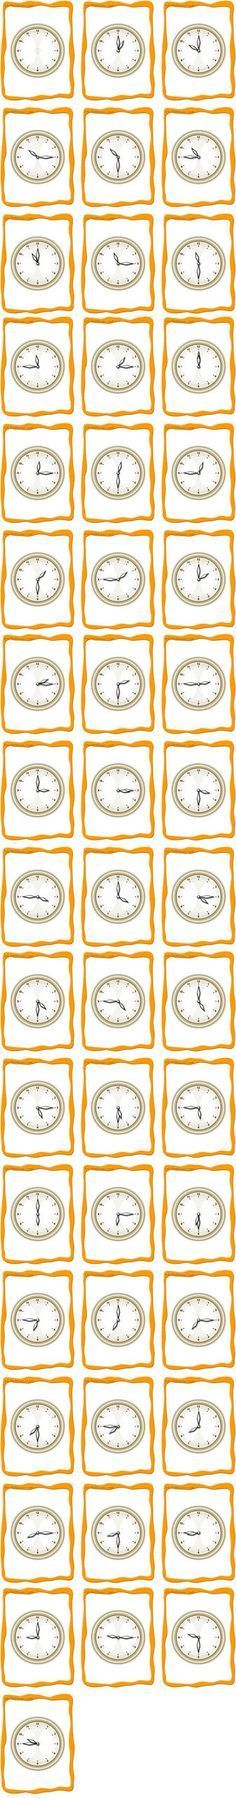 Flashcards For Telling Time Requires A Download Of A